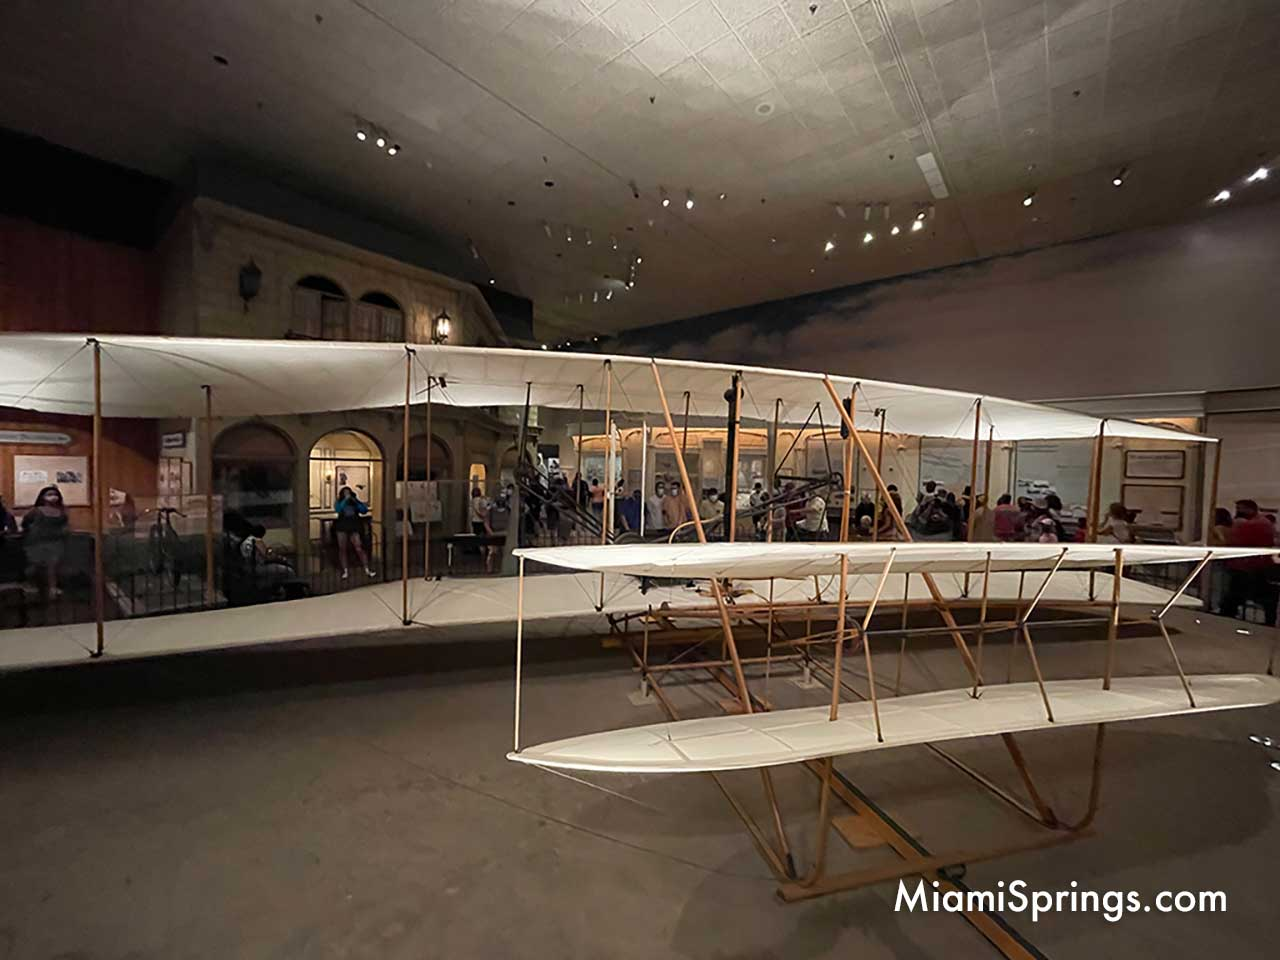 Original Wright Flyer as displayed at the Smithsonian Air and Space Museum in Washington DC